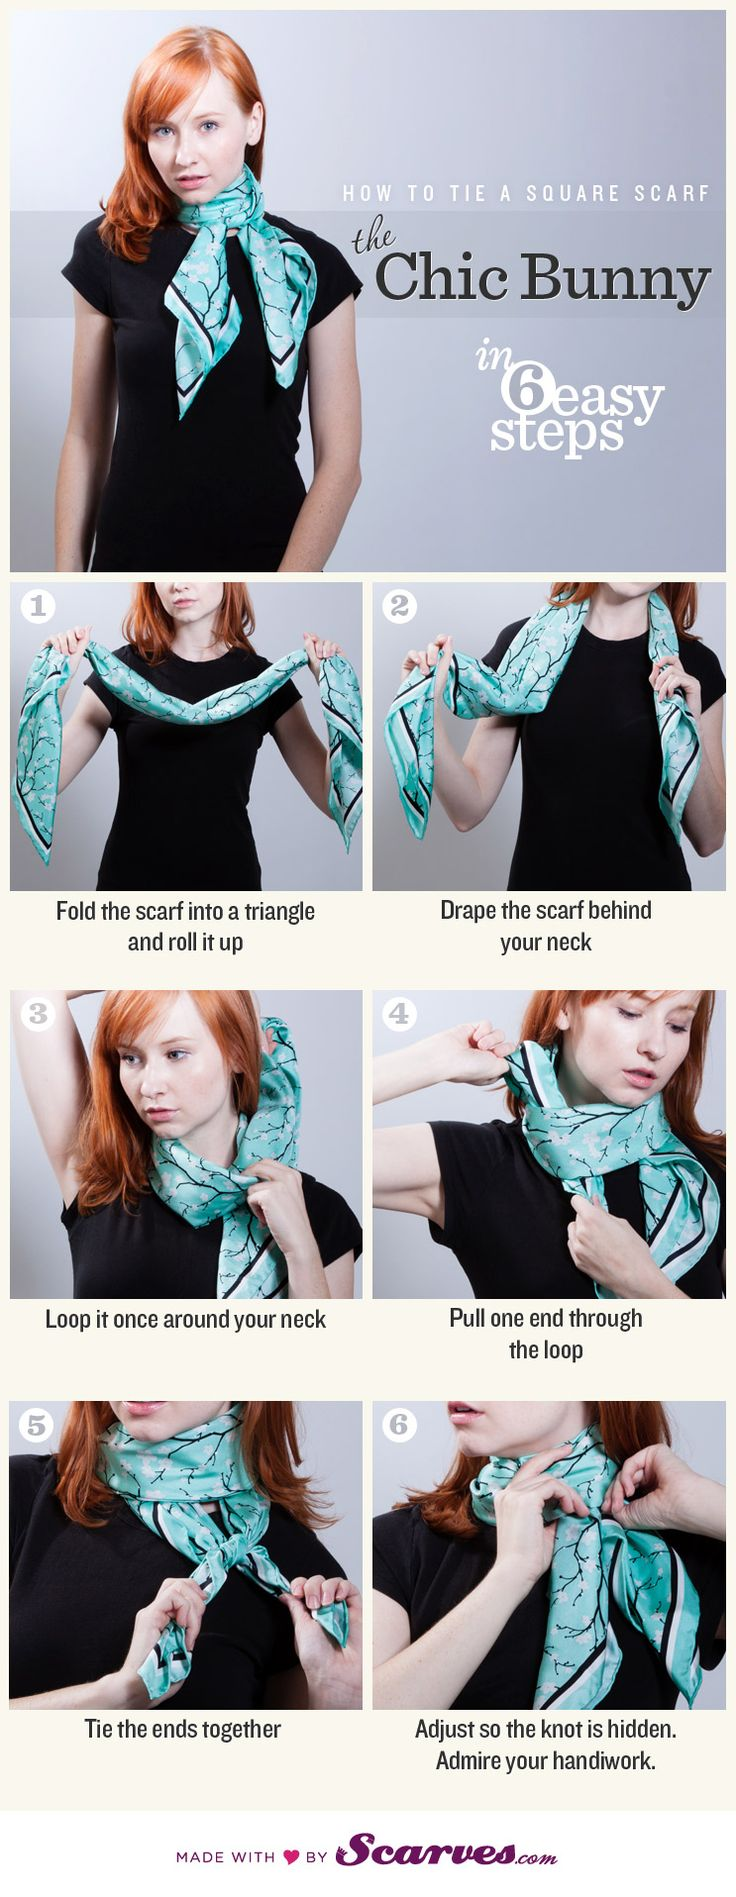 Source: Scarves.com 7. The Chic Bunny Square scarves can be another tricky scarf to tie fashionable, because they have much less material. They are mostly used to add some detail to an open neckline and can even be added to your hair! Scarves.com is your go-to place for both buying and styling your scarves! Source: ClassySassyBlog.comContinue Reading...